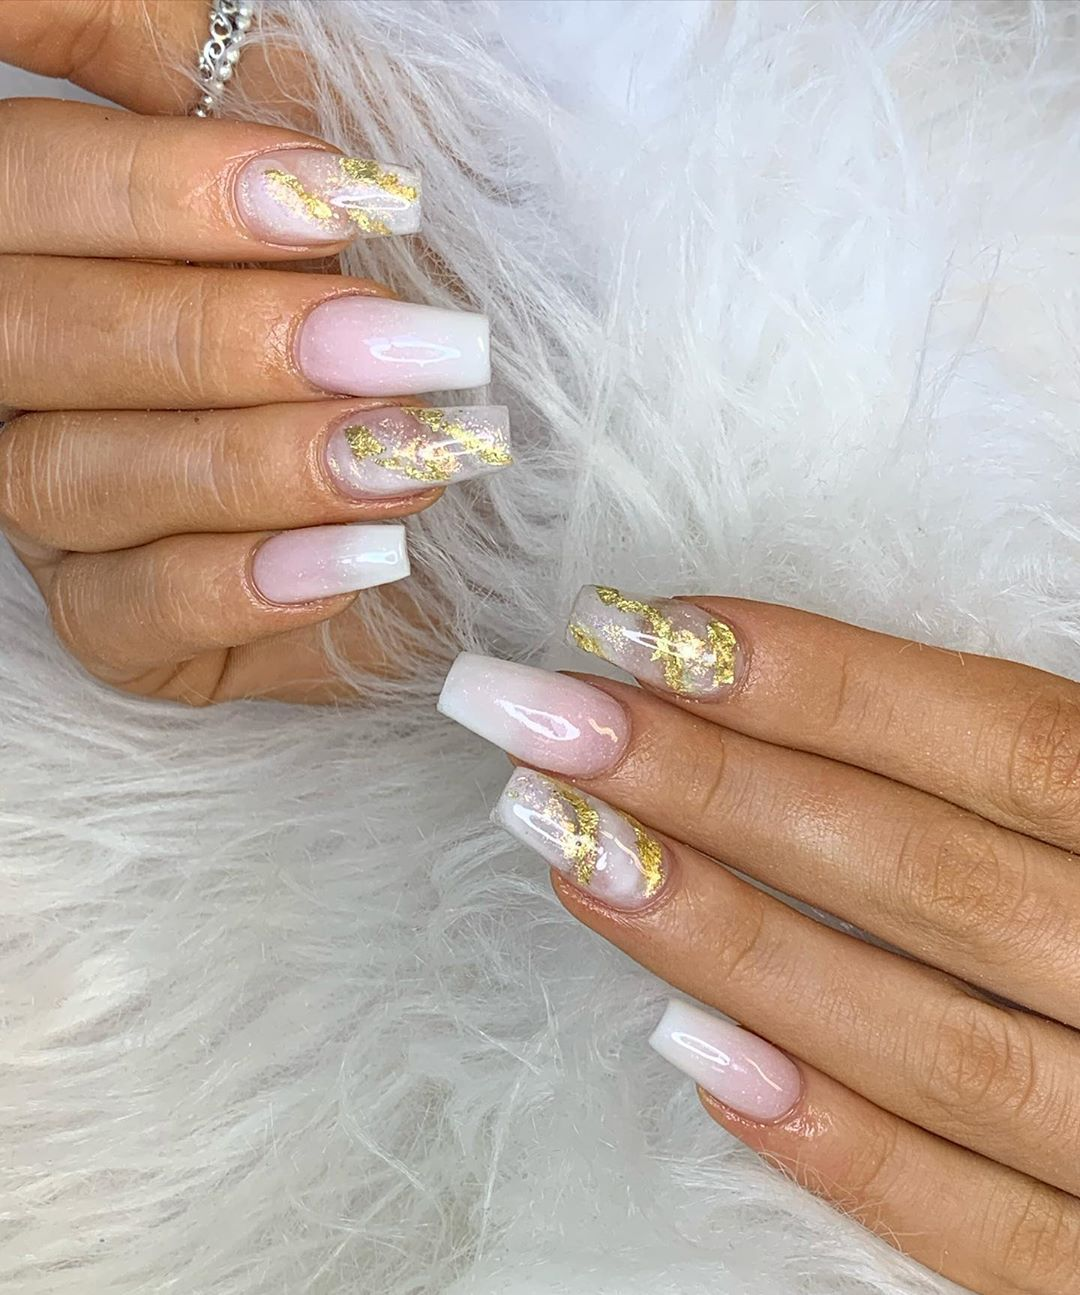 Transform your nails with these pink ombre Christmas themed designs